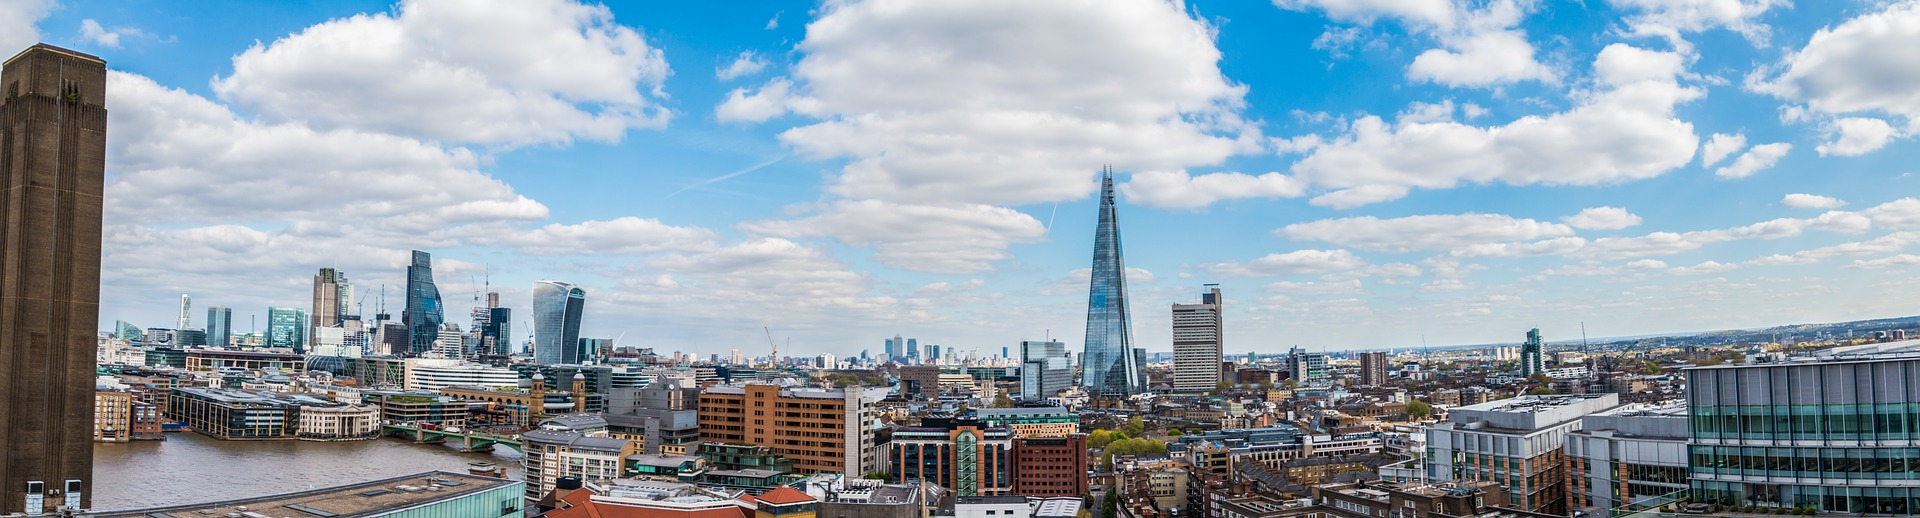 how to buy a house UK first time the shard